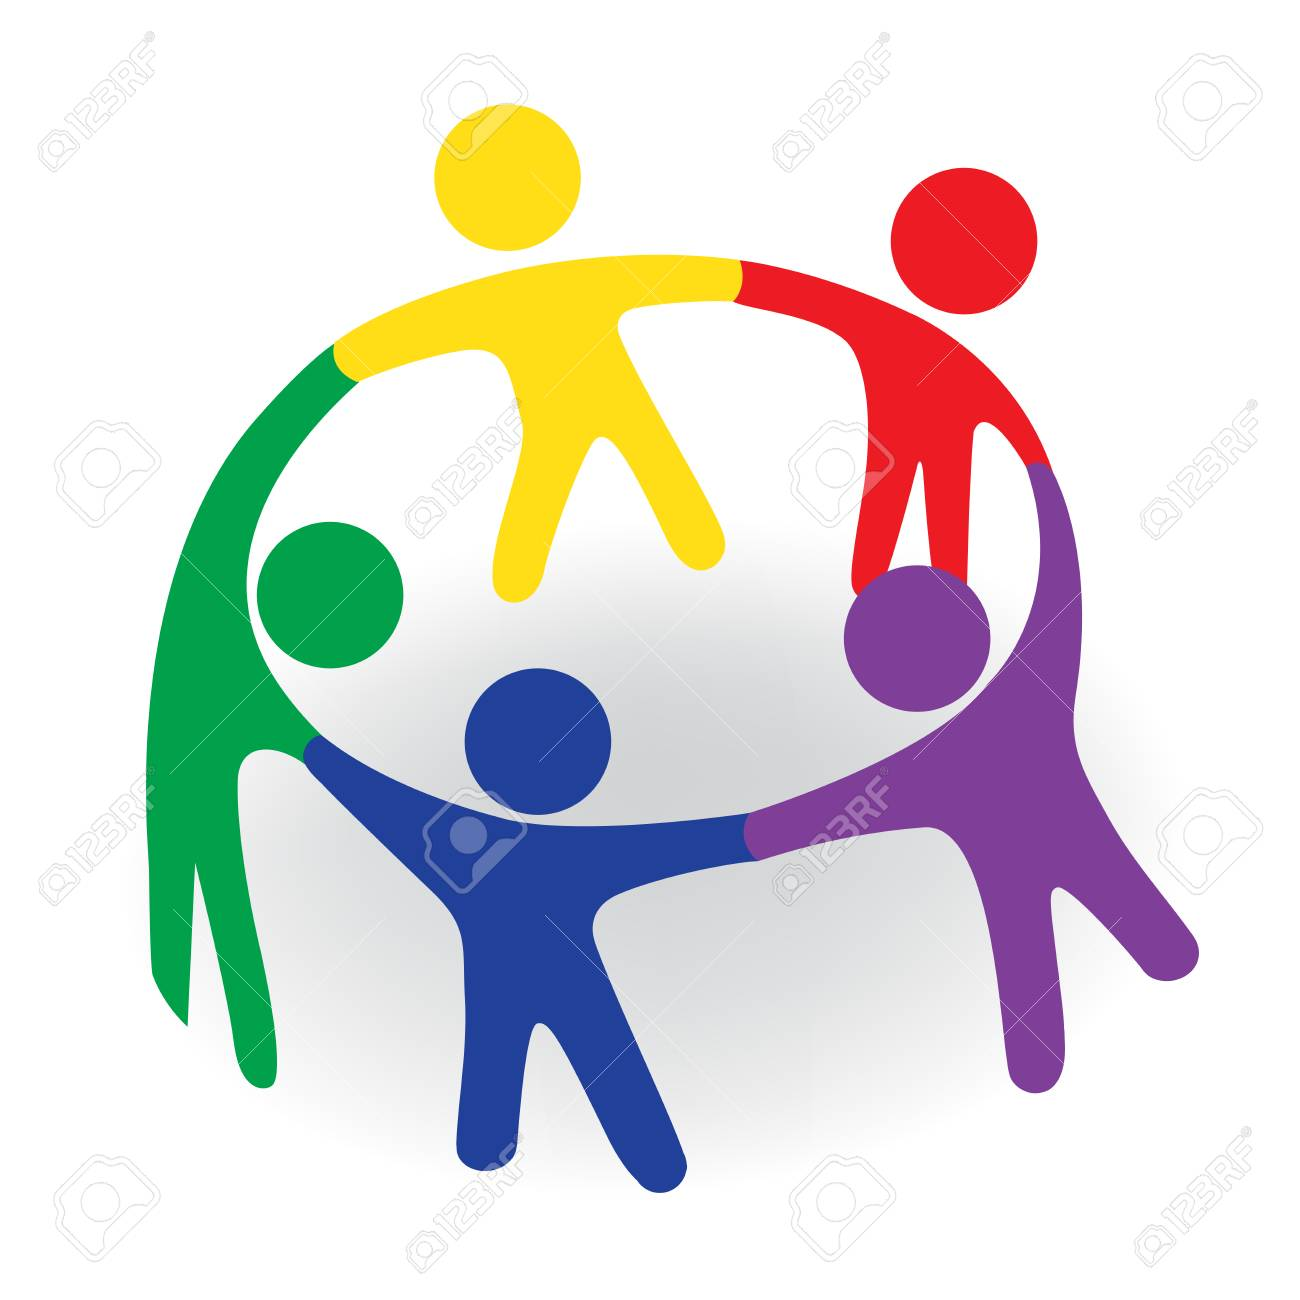 Group of team people in a meeting emblem vector image - 90821829